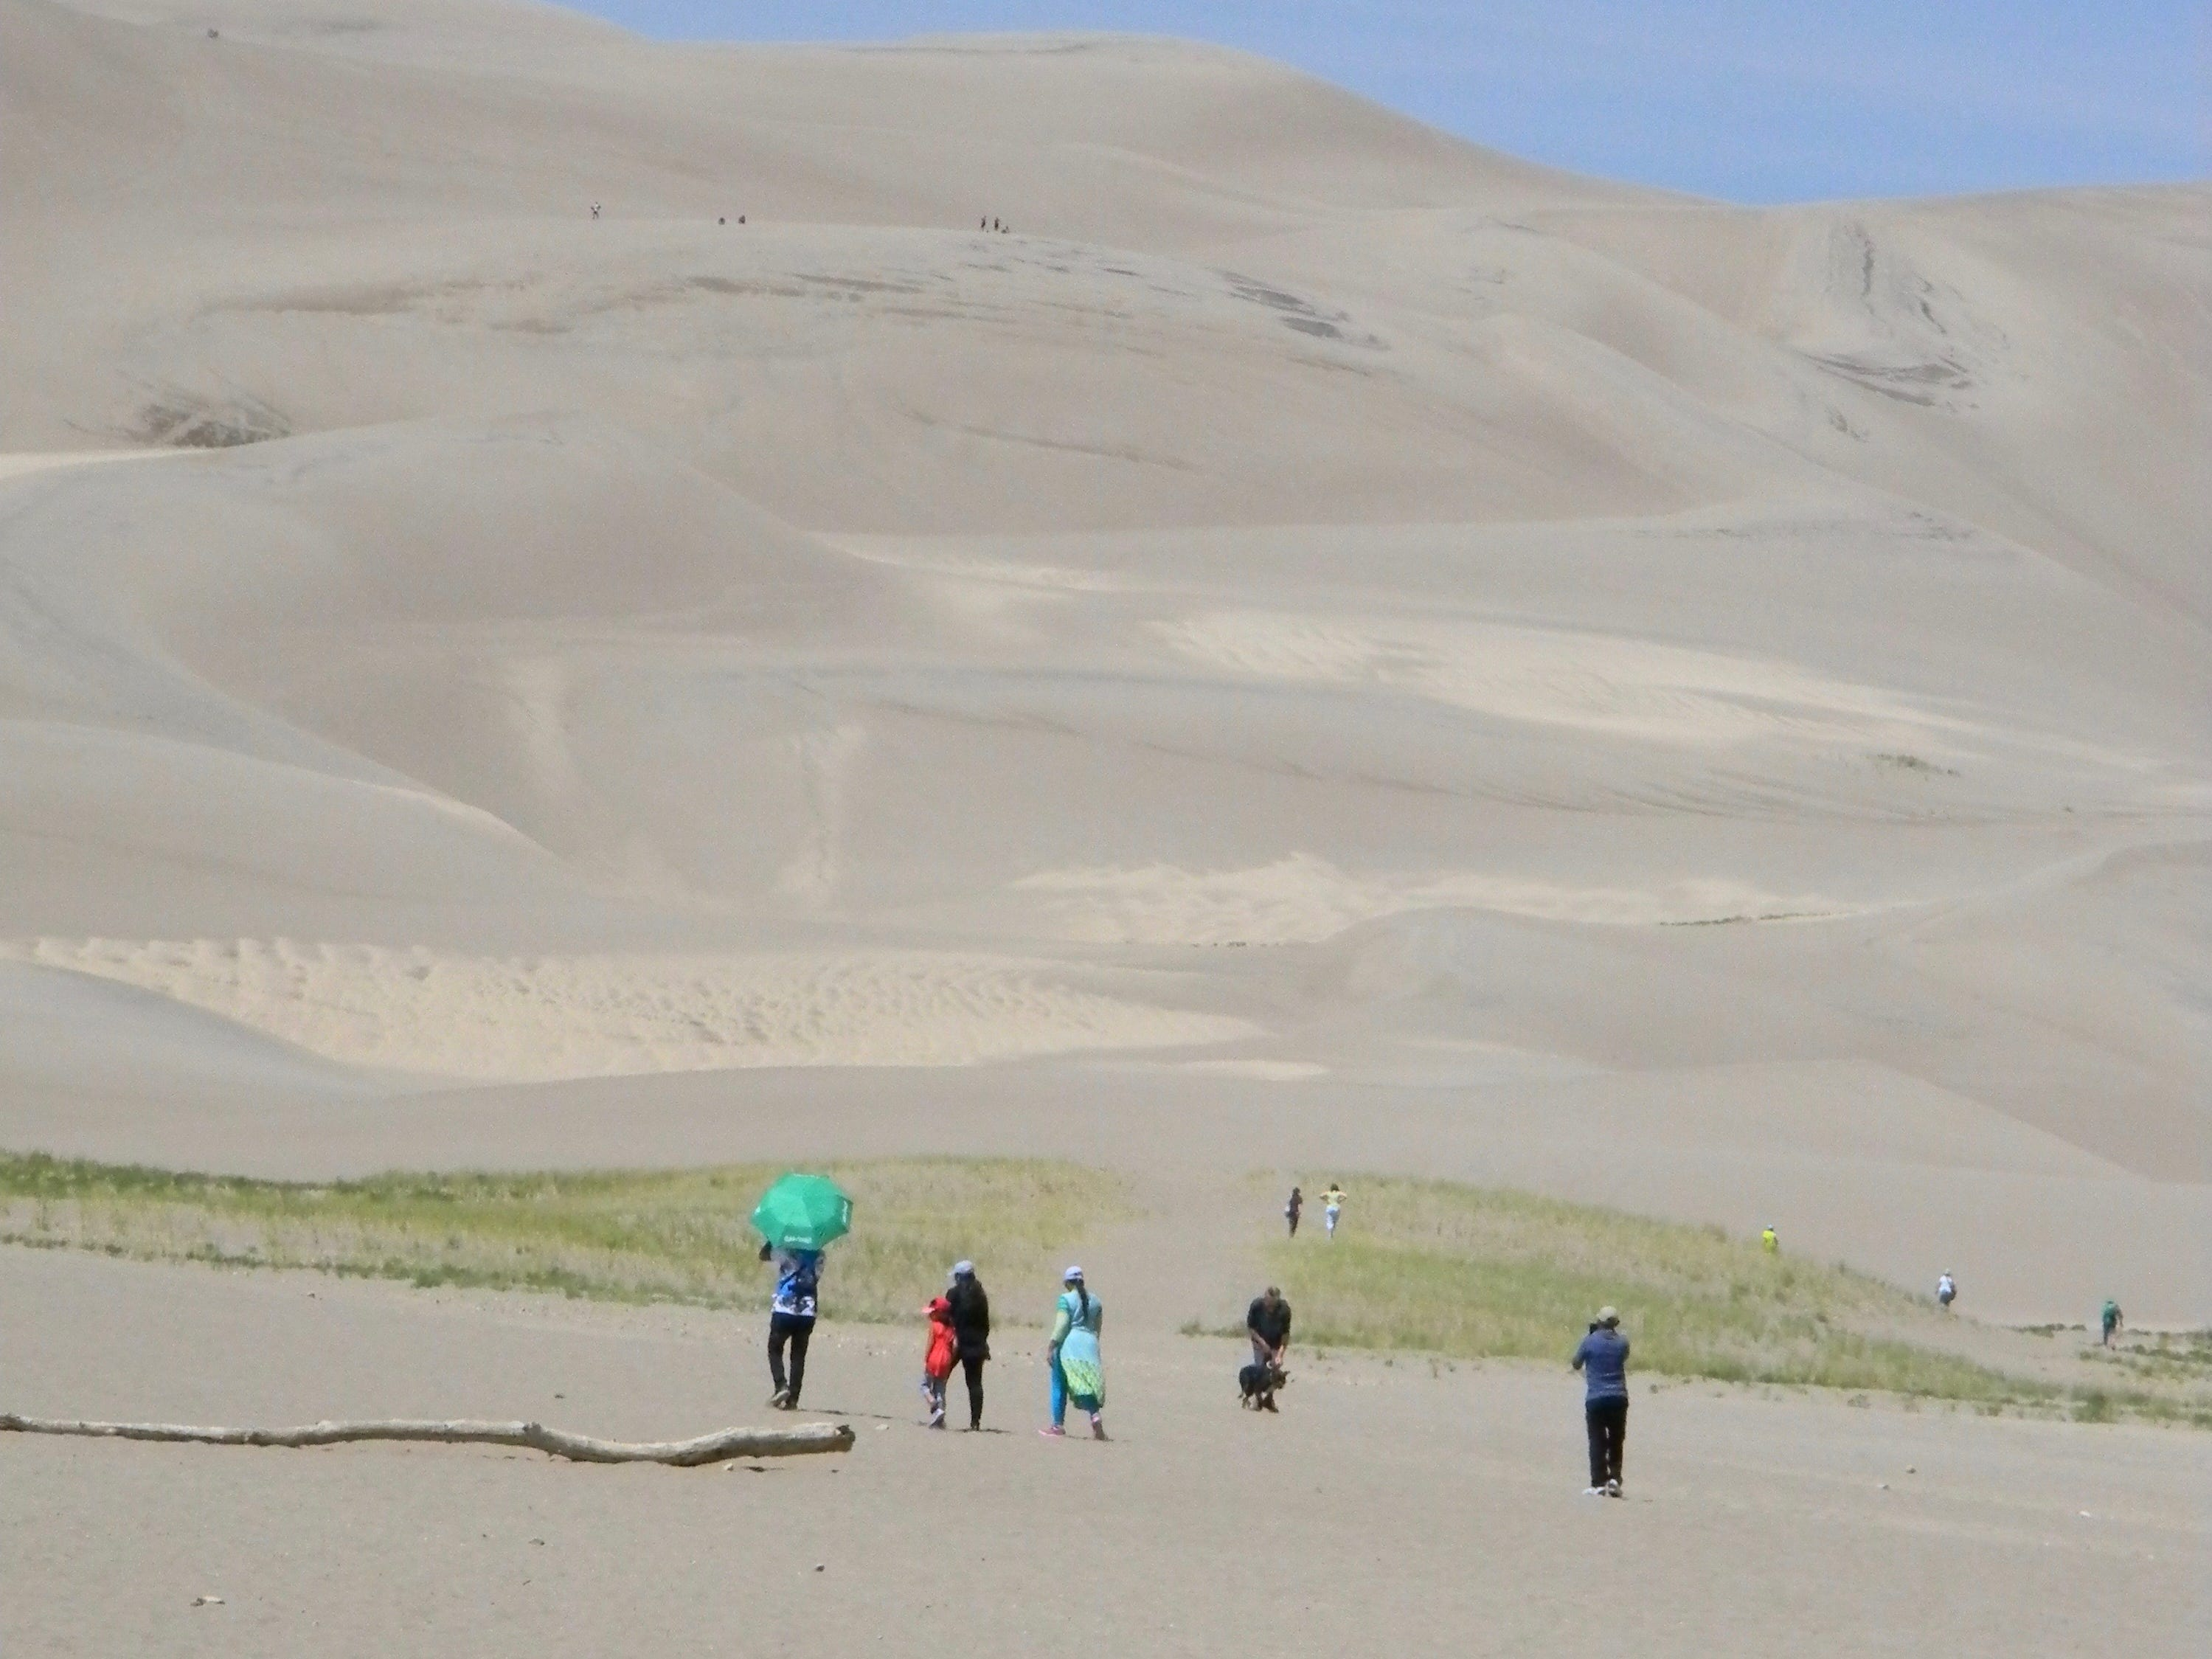 A daunting experience, visitors to Great Sands Dunes National Park contemplate the challenge of climbing 700 feet to the top.